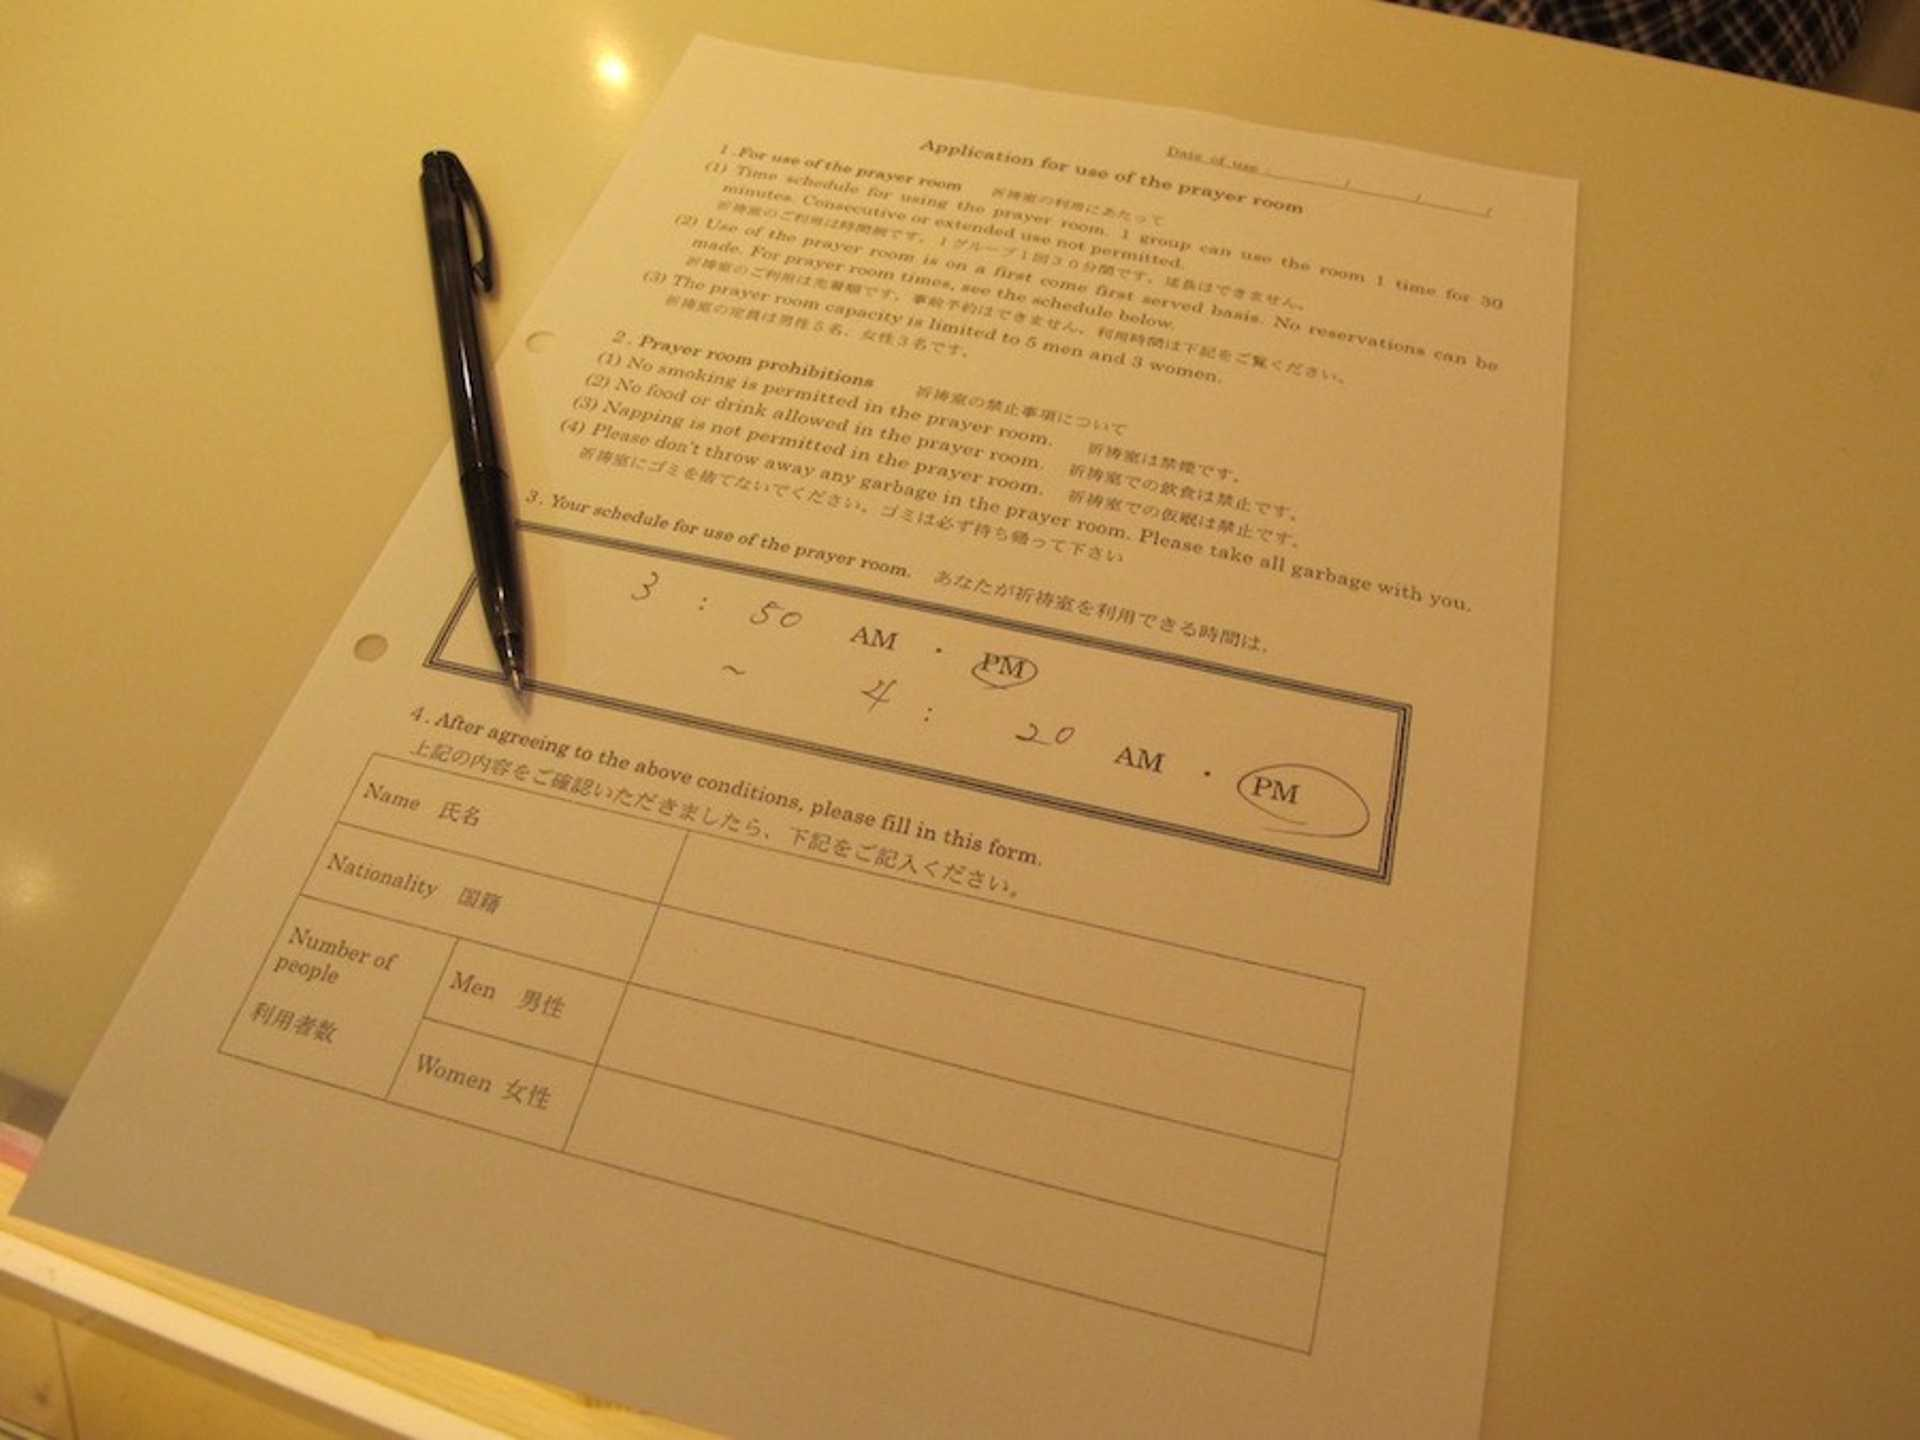 Fill in the application form. Take note that you can use the room for a maximum of 30 minutes.